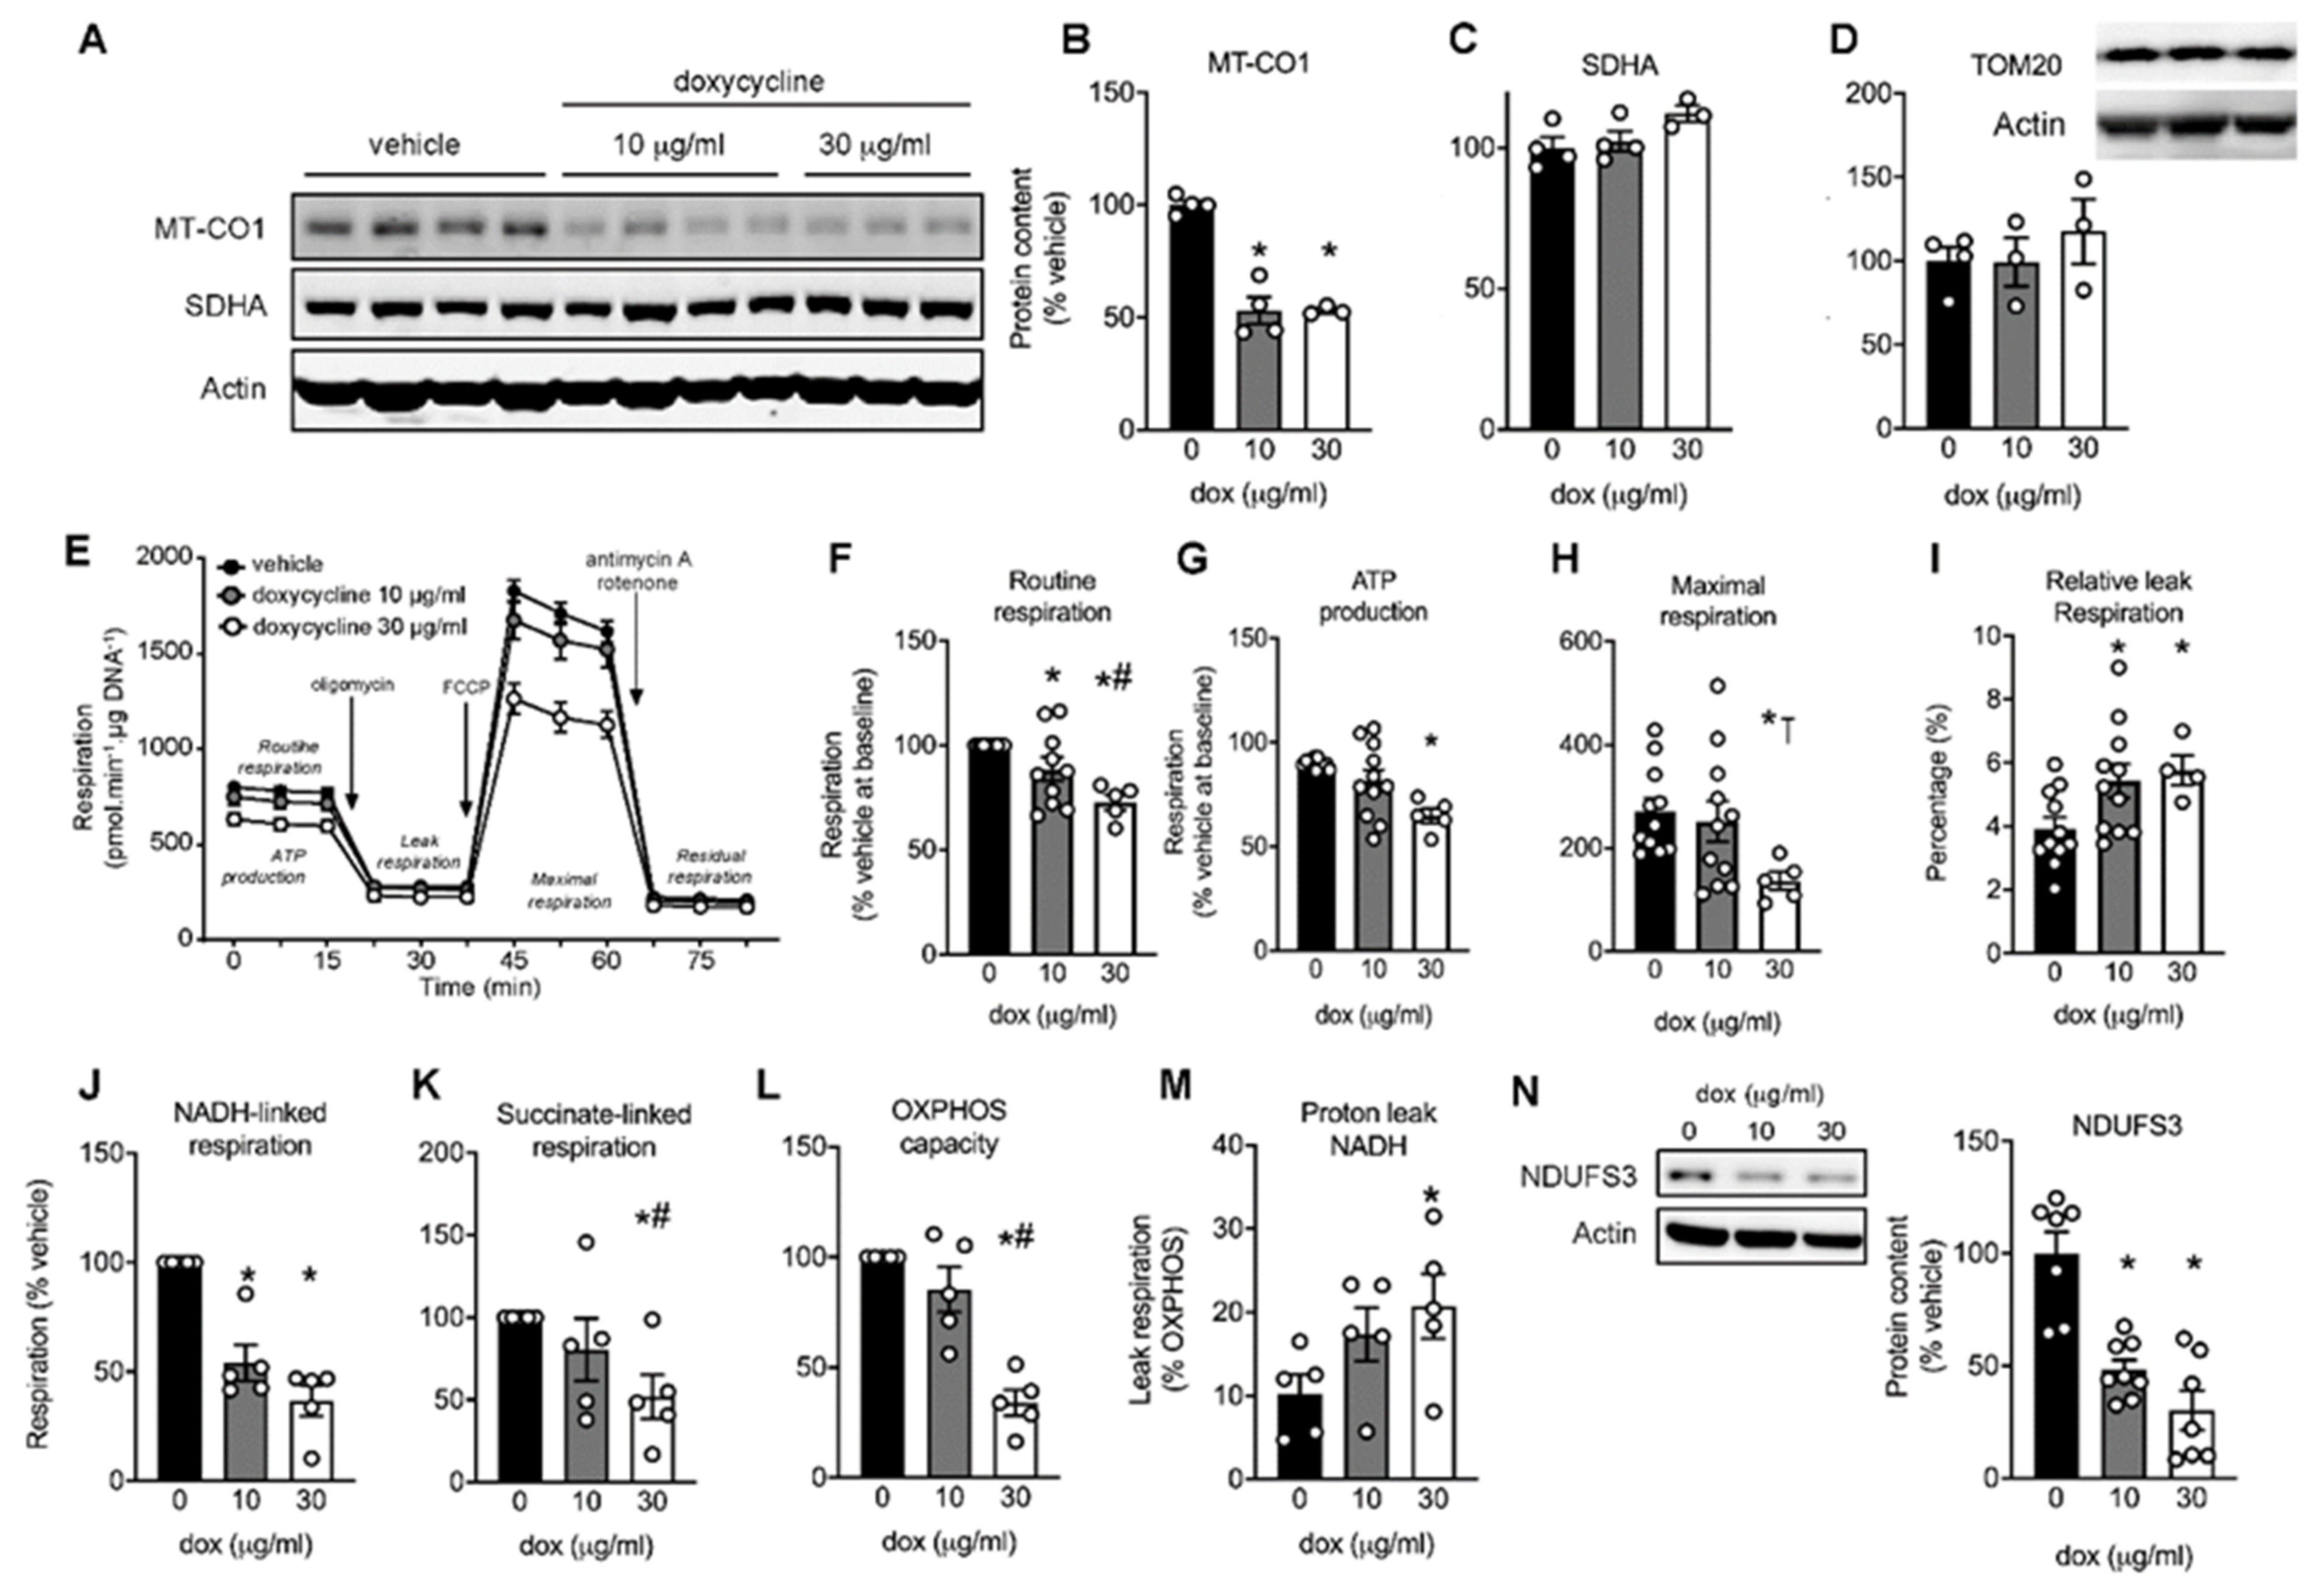 Ijms Free Full Text The Antibiotic Doxycycline Impairs Cardiac Mitochondrial And Contractile Function Html